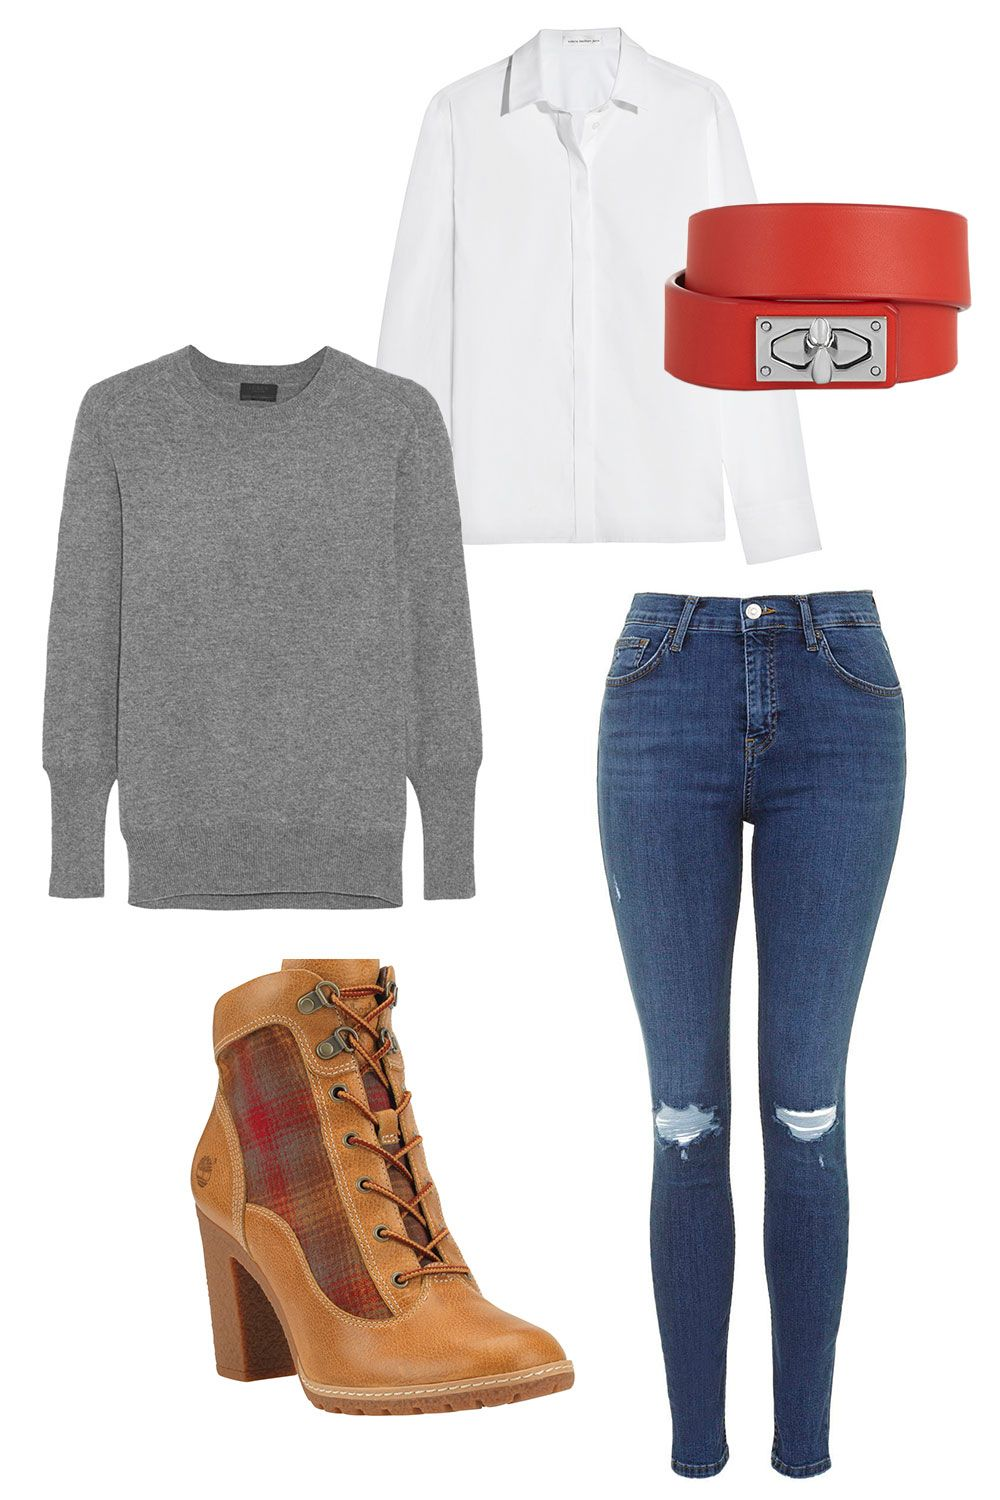 """<p>Venturing outside in the elements to get to that double-bellini weekend meal with your friends? Toss on a pair of durable high-heeled boots to stay warm <em>and</em> look great. Dial up the prep by layering a cashmere sweater over a crisp white button down shirt. </p><p><em><strong></strong><em>Timberland Glancy Hiker Boot, $129.95, <a href=""""http://shop.nordstrom.com/s/timberland-glancy-hiker-boot/4023017?origin=keywordsearch-personalizedsort&contextualcategoryid=2375500&fashionColor=WHEAT&resultback=1797"""" target=""""_blank"""">nordstrom.com</a></em>&#x3B; Topshop MOTO Mid Blue Ripped Jamie Jeans, $75, <a href=""""http://us.topshop.com/en/tsus/product/clothing-70483/jeans-4593087/skinny-jeans-3533632/moto-mid-blue-ripped-jamie-jeans-4572601?bi=0&ps=200"""" target=""""_blank"""">topshop.com</a>&#x3B; Victoria Beckham Denim Stretch Cotton-Blend Poplin Shirt, $355, <a href=""""http://www.net-a-porter.com/product/574282"""" target=""""_blank"""">net-a-porter.com</a>&#x3B; Givenchy Shark Lock Bracelet in Leather and Palladium-Tone Brass, $575, <a href=""""http://www.net-a-porter.com/us/en/product/452267"""" target=""""_blank"""">net-a-porter.com</a>&#x3B; J.Crew Collection Relaxed Cashmere Pullover Sweater, $228, <a href=""""https://www.jcrew.com/womens_category/sweaters/jcrewcashmere/PRDOVR~E2364/E2364.jsp"""" target=""""_blank"""">jcrew.com</a></em></p>"""